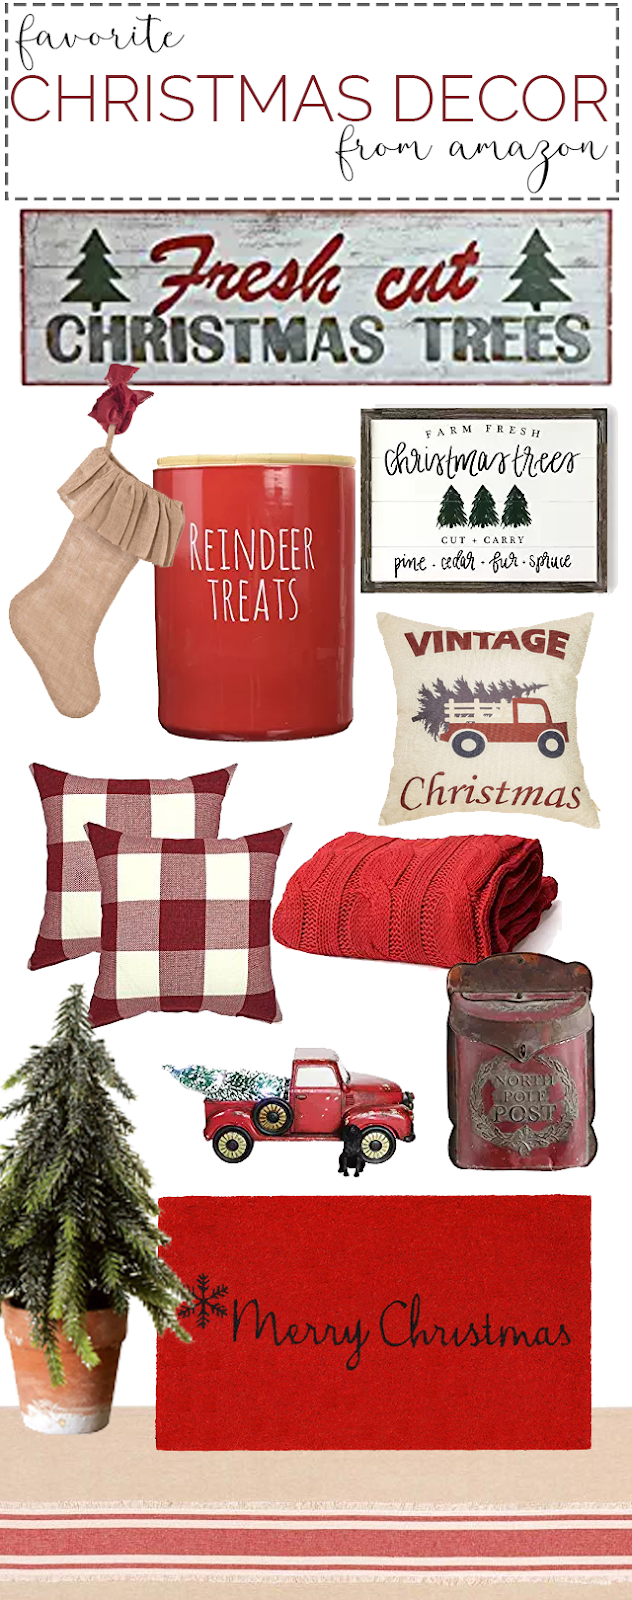 Christmas decor from Amazon. Favorite Christmas decor. Christmas decorating ideas. Red Christmas decor. Farmhouse style Christmas decor and decorating ideas.